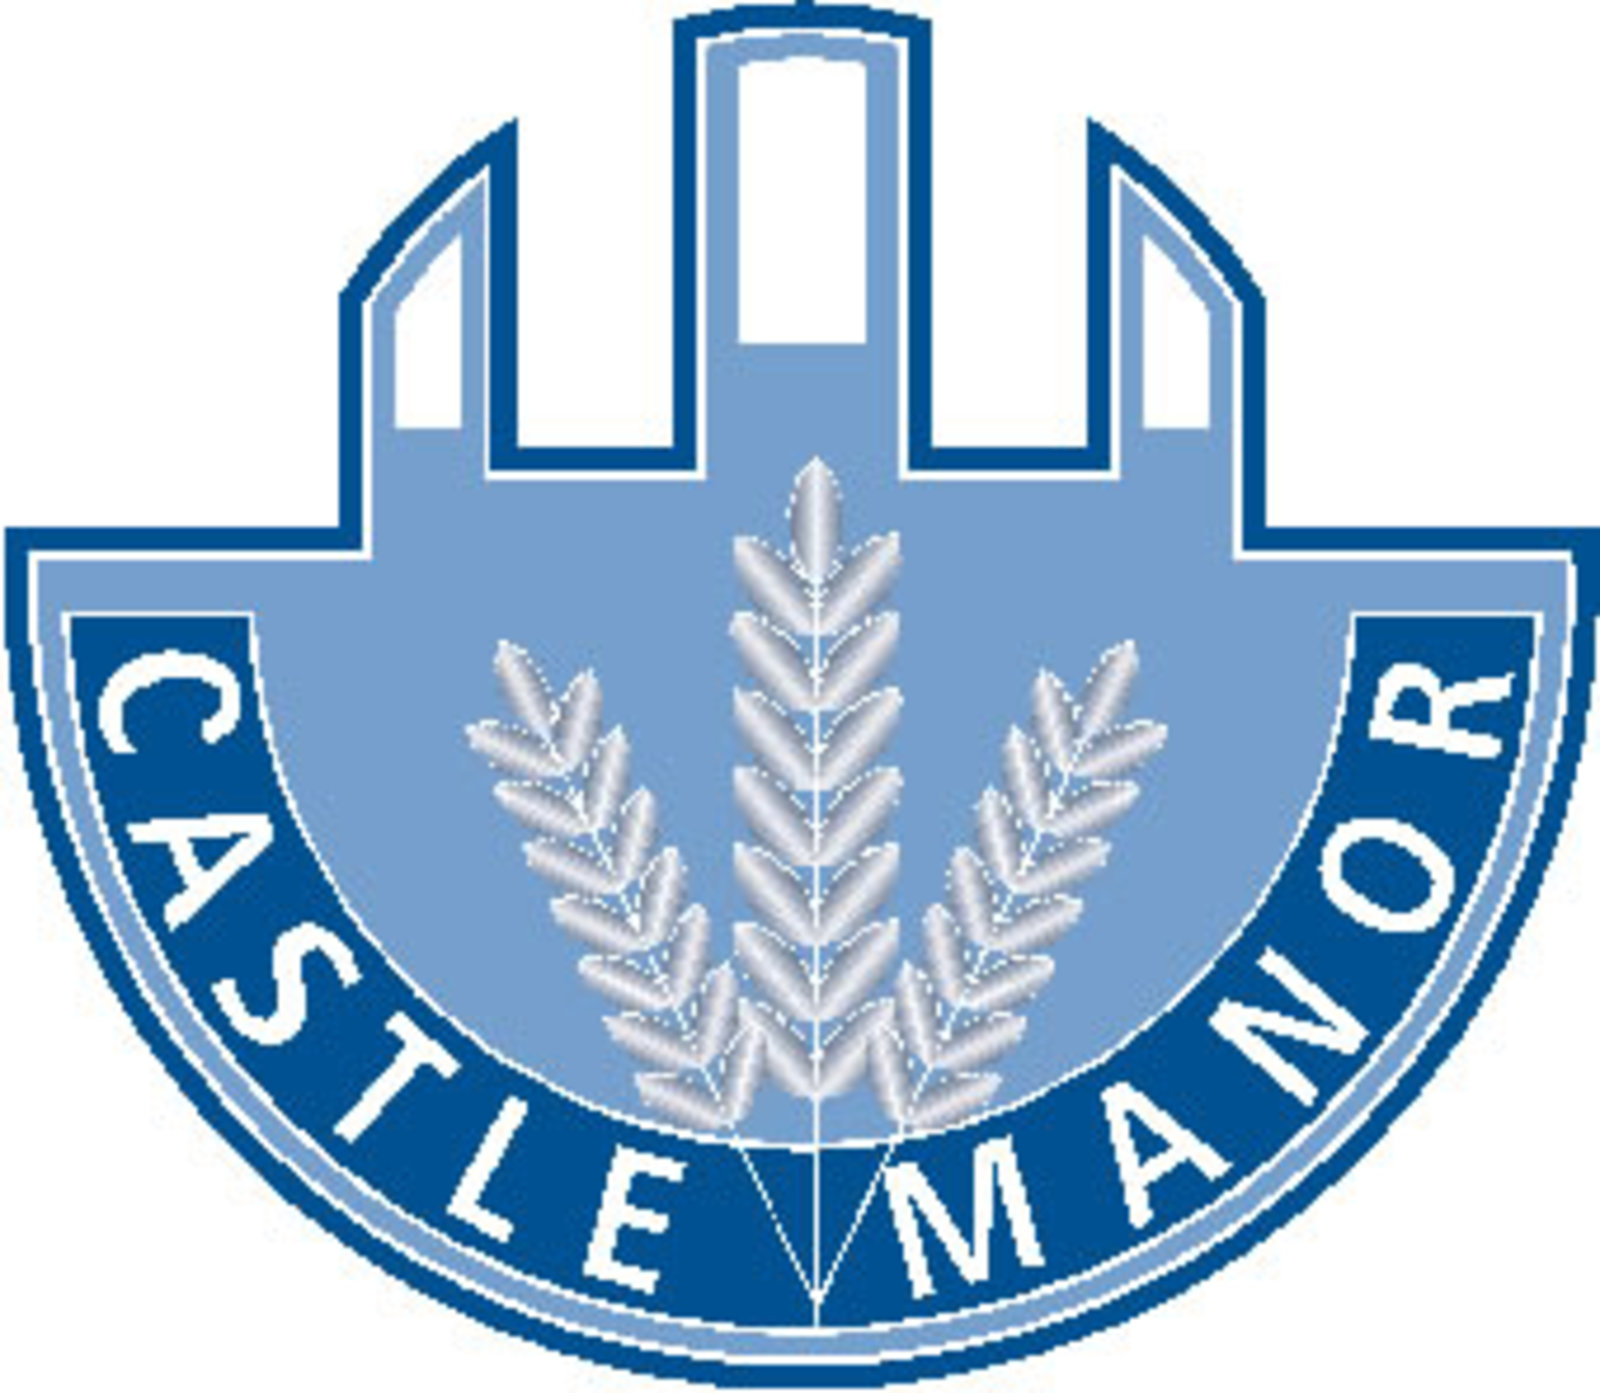 Castle manor logo jpeg